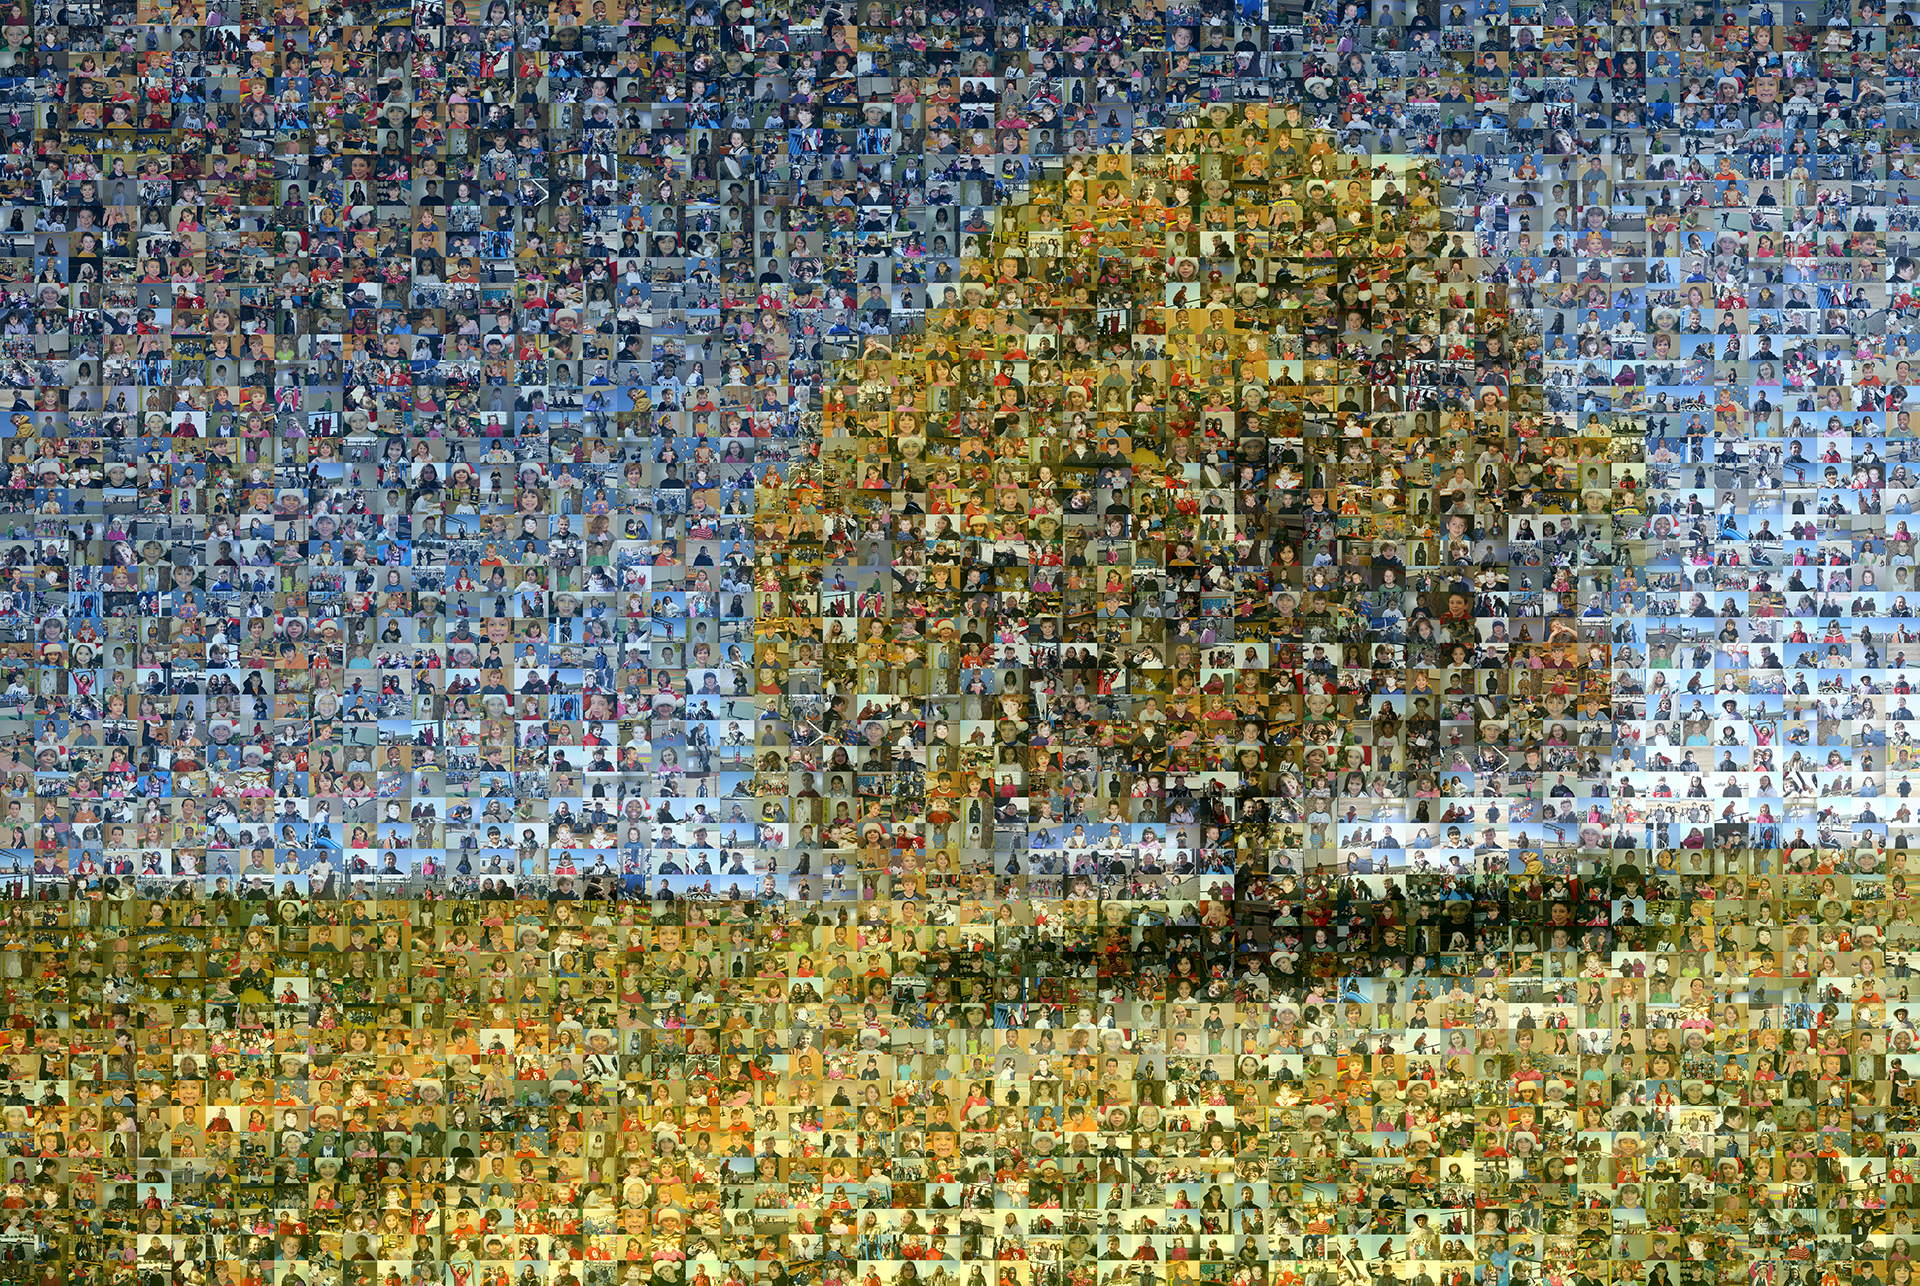 photo mosaic created using 675 customer selected photos